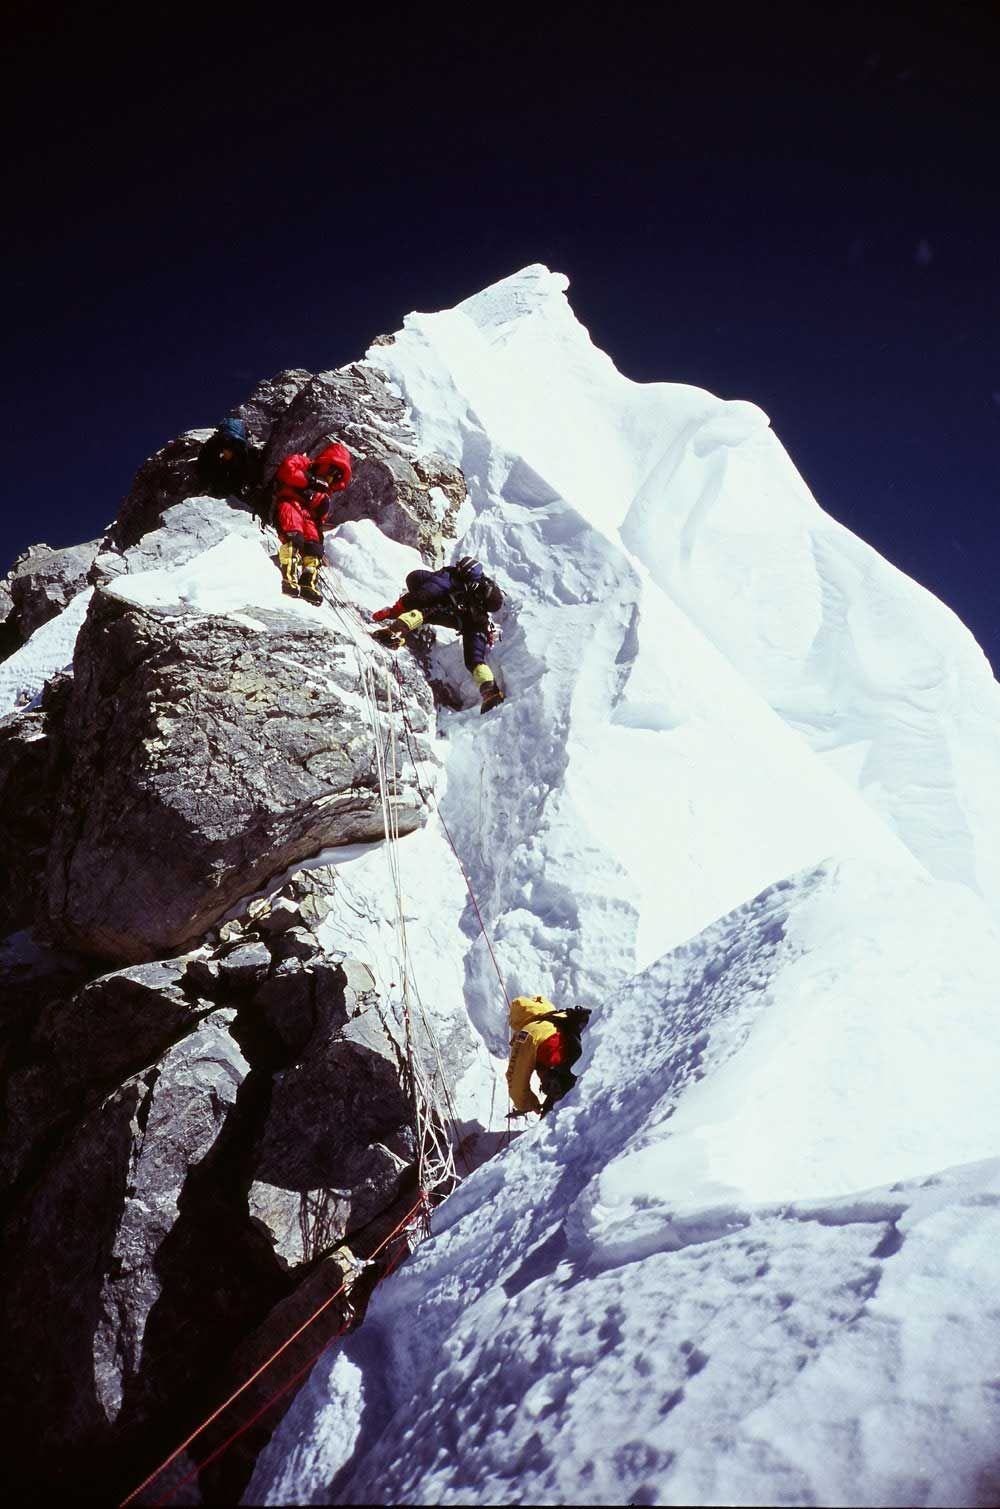 Hillary step on Mount Everest & Hillary step on Mount Everest | Mount Everest - 8848m (1 ...